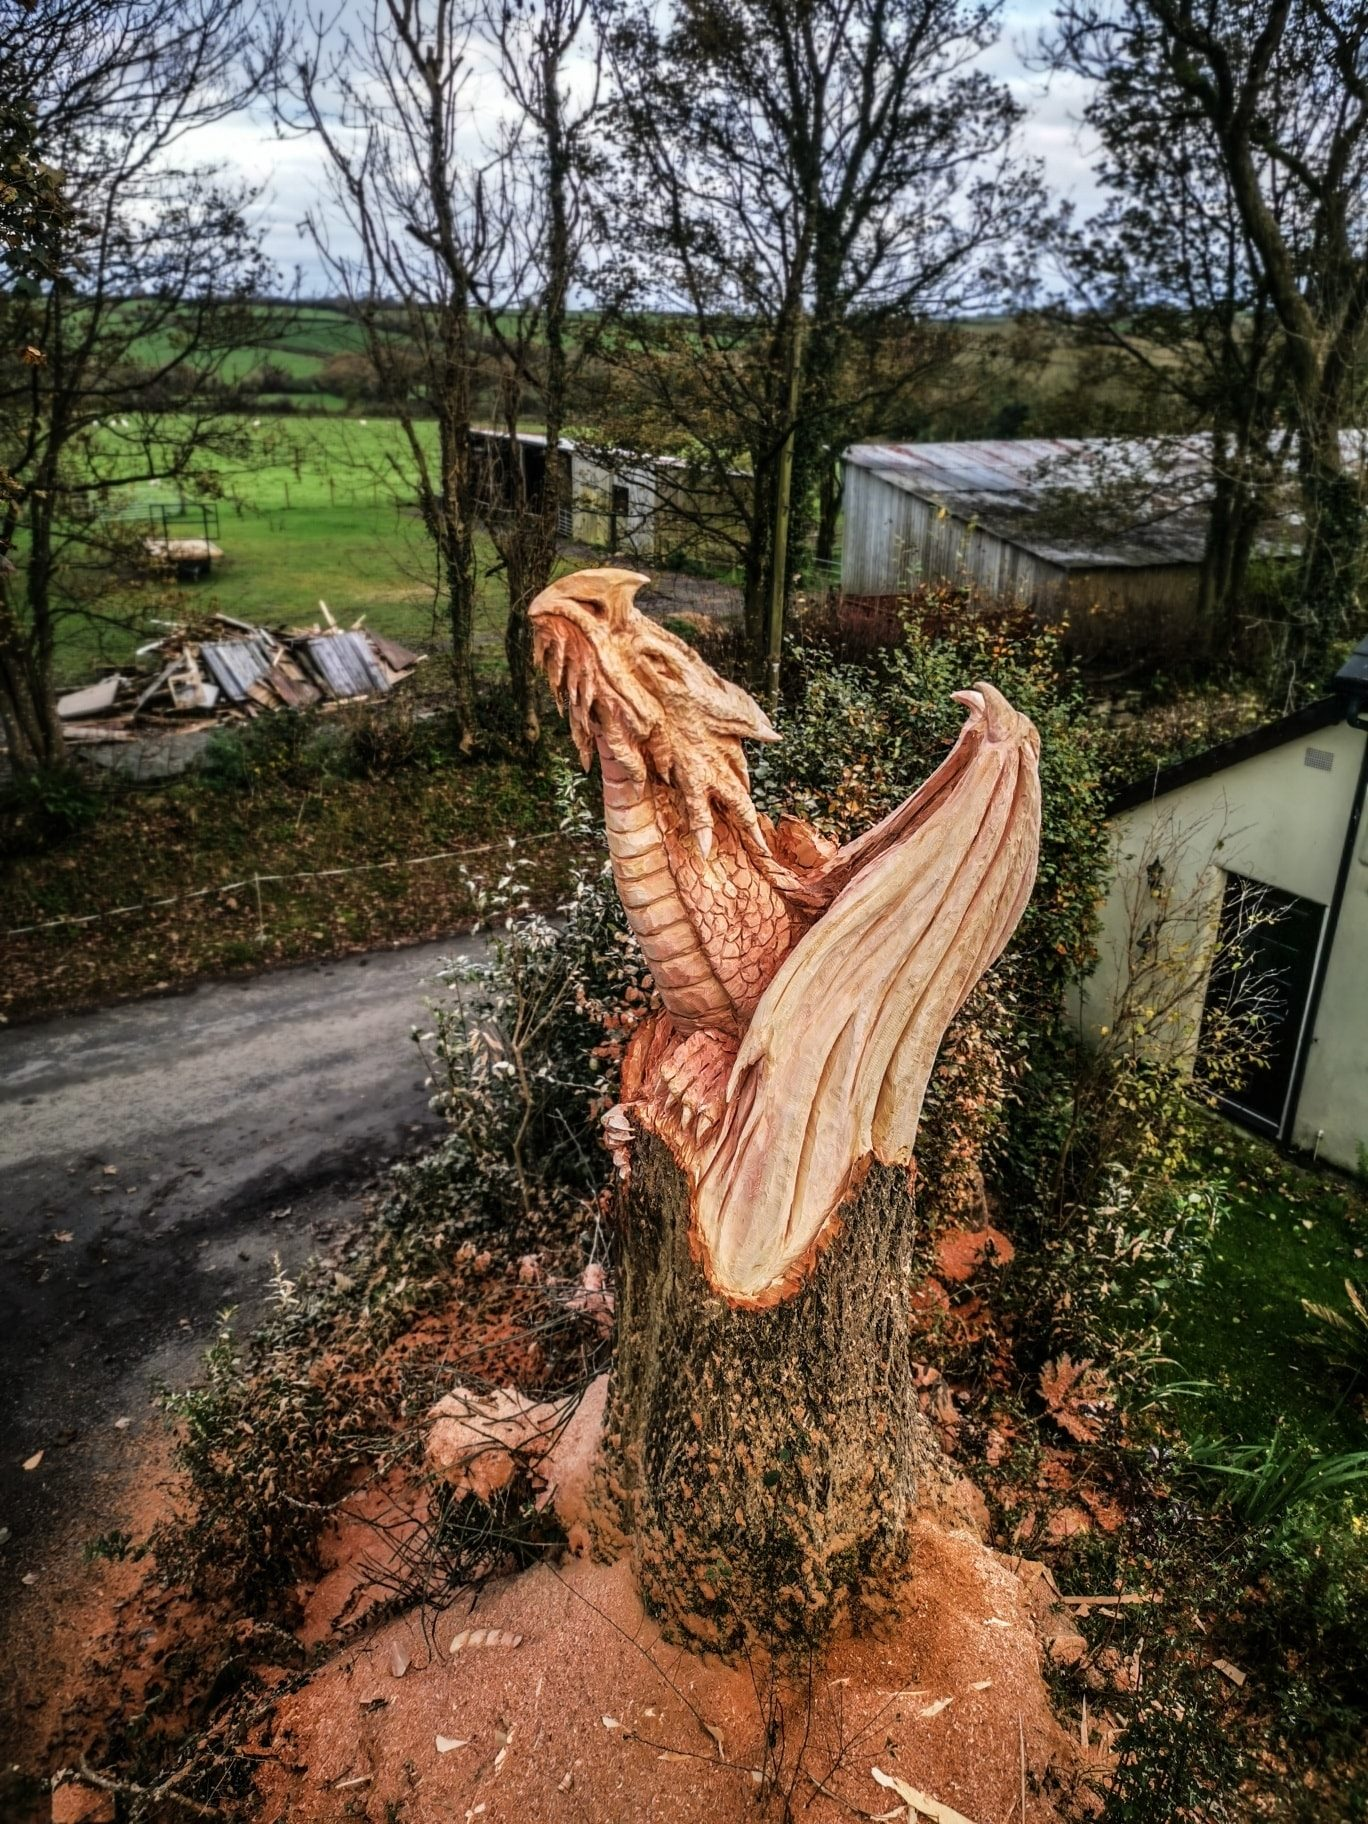 view looking down on a sculpture of a dragon emerging from a tree trunk. Sculpture is by artist simon o'rourke and transformed a tree killed by ash dieback into a piece of art